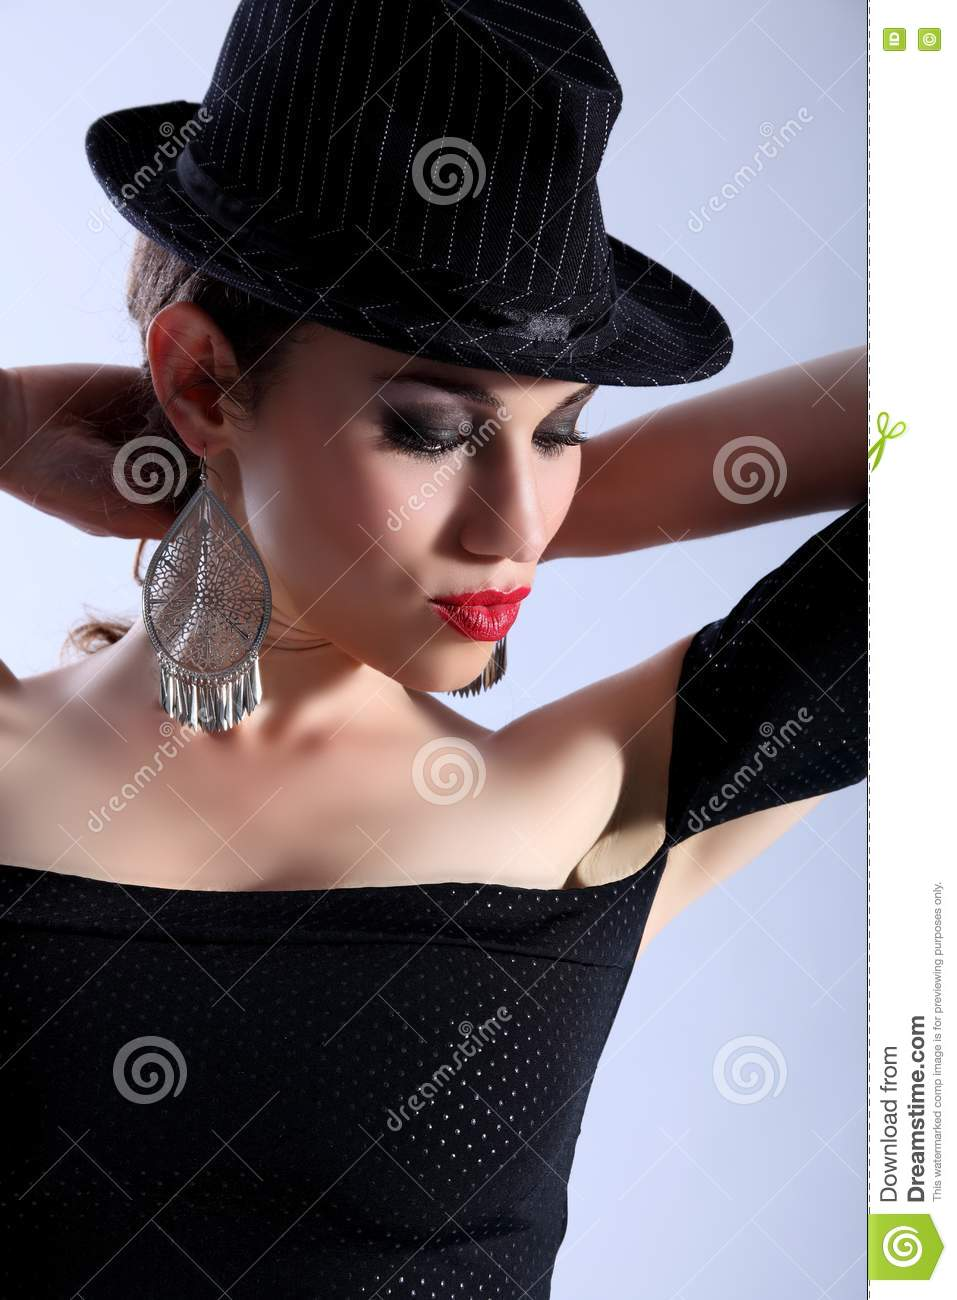 Stylish Fashion Photography By Street Etiquette ... |Hat Fashion Photography